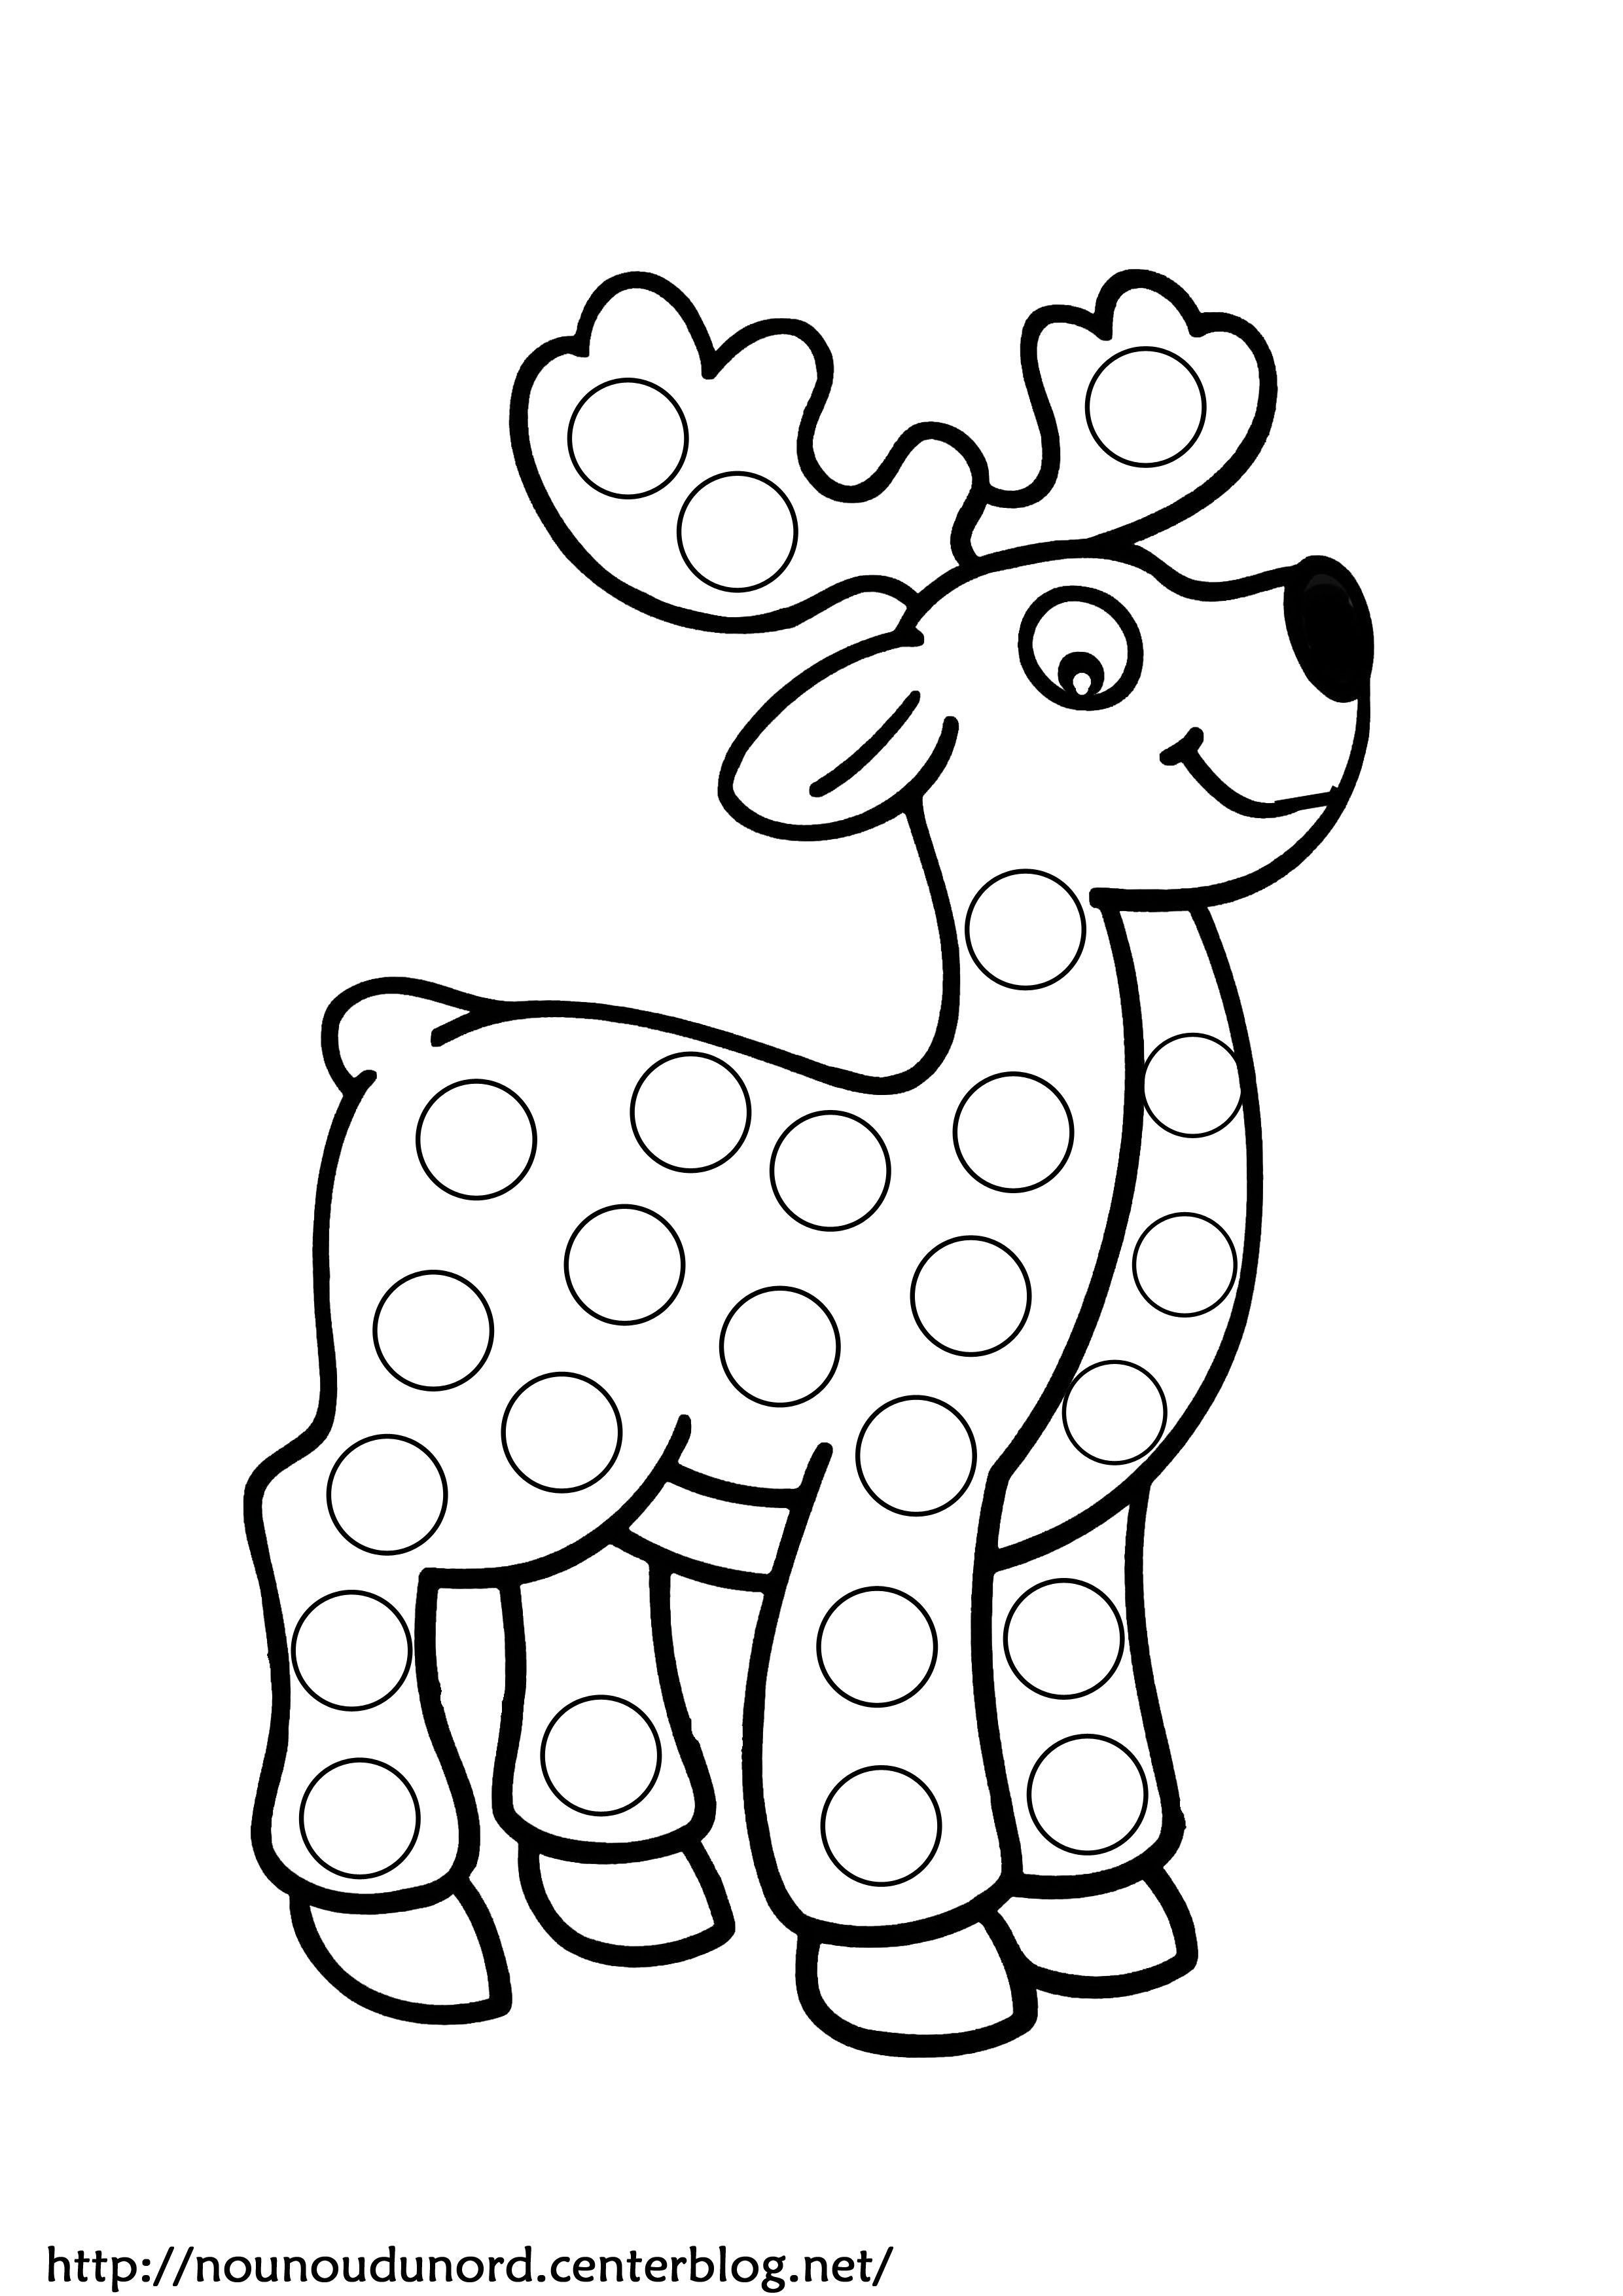 Coloriage noel a gommettes - Nounoudunord coloriage ...